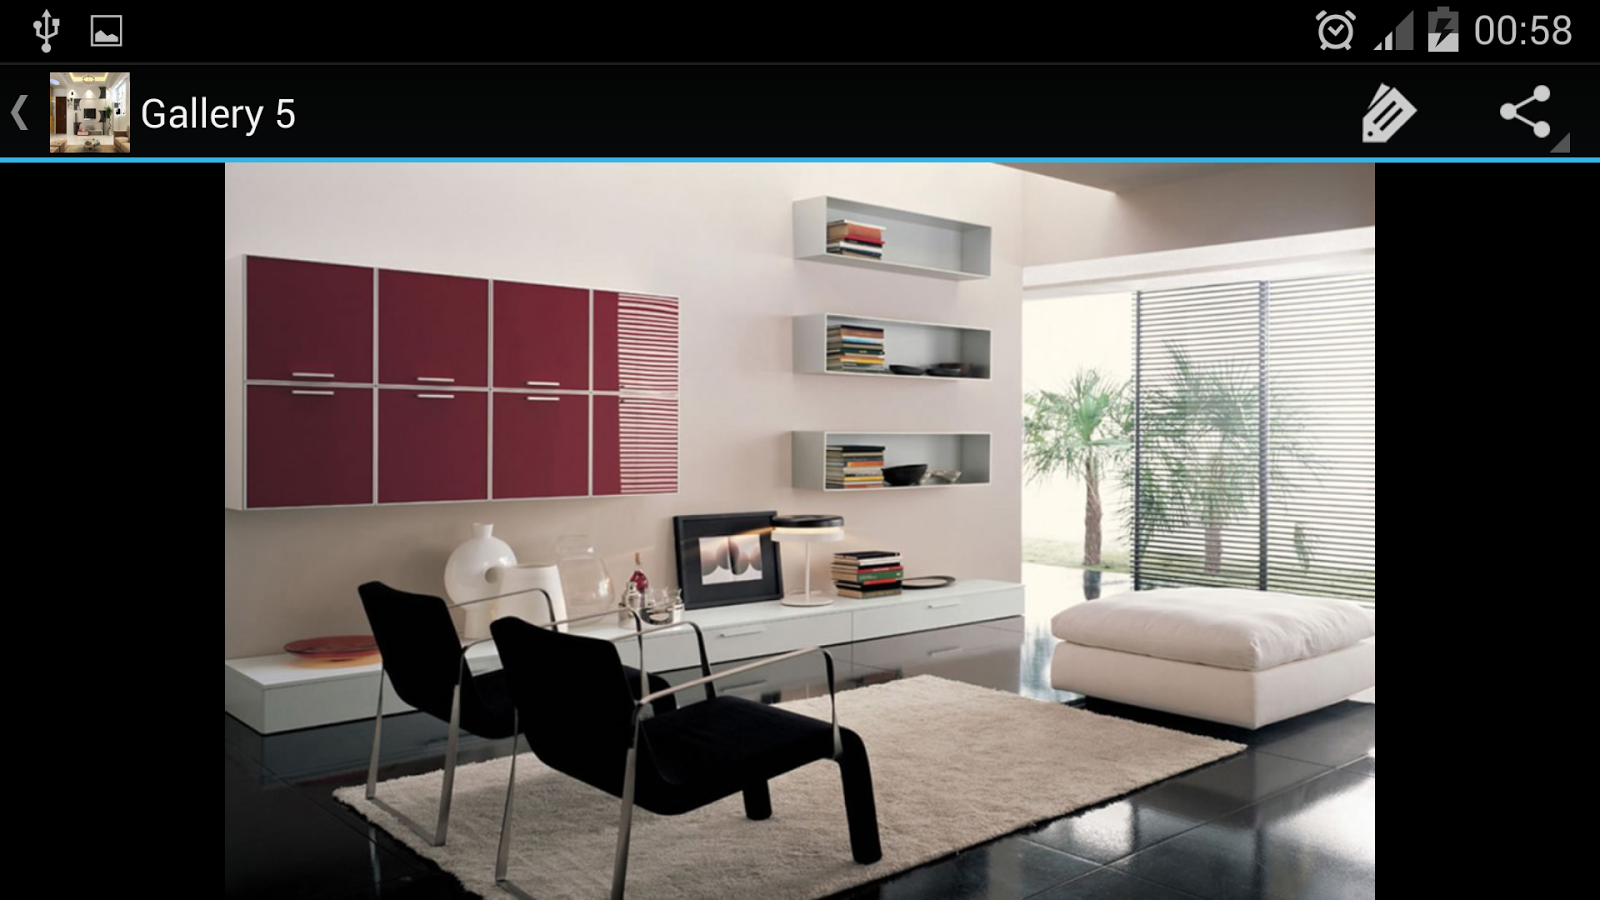 Living room decorating ideas android apps on google play for Room design app